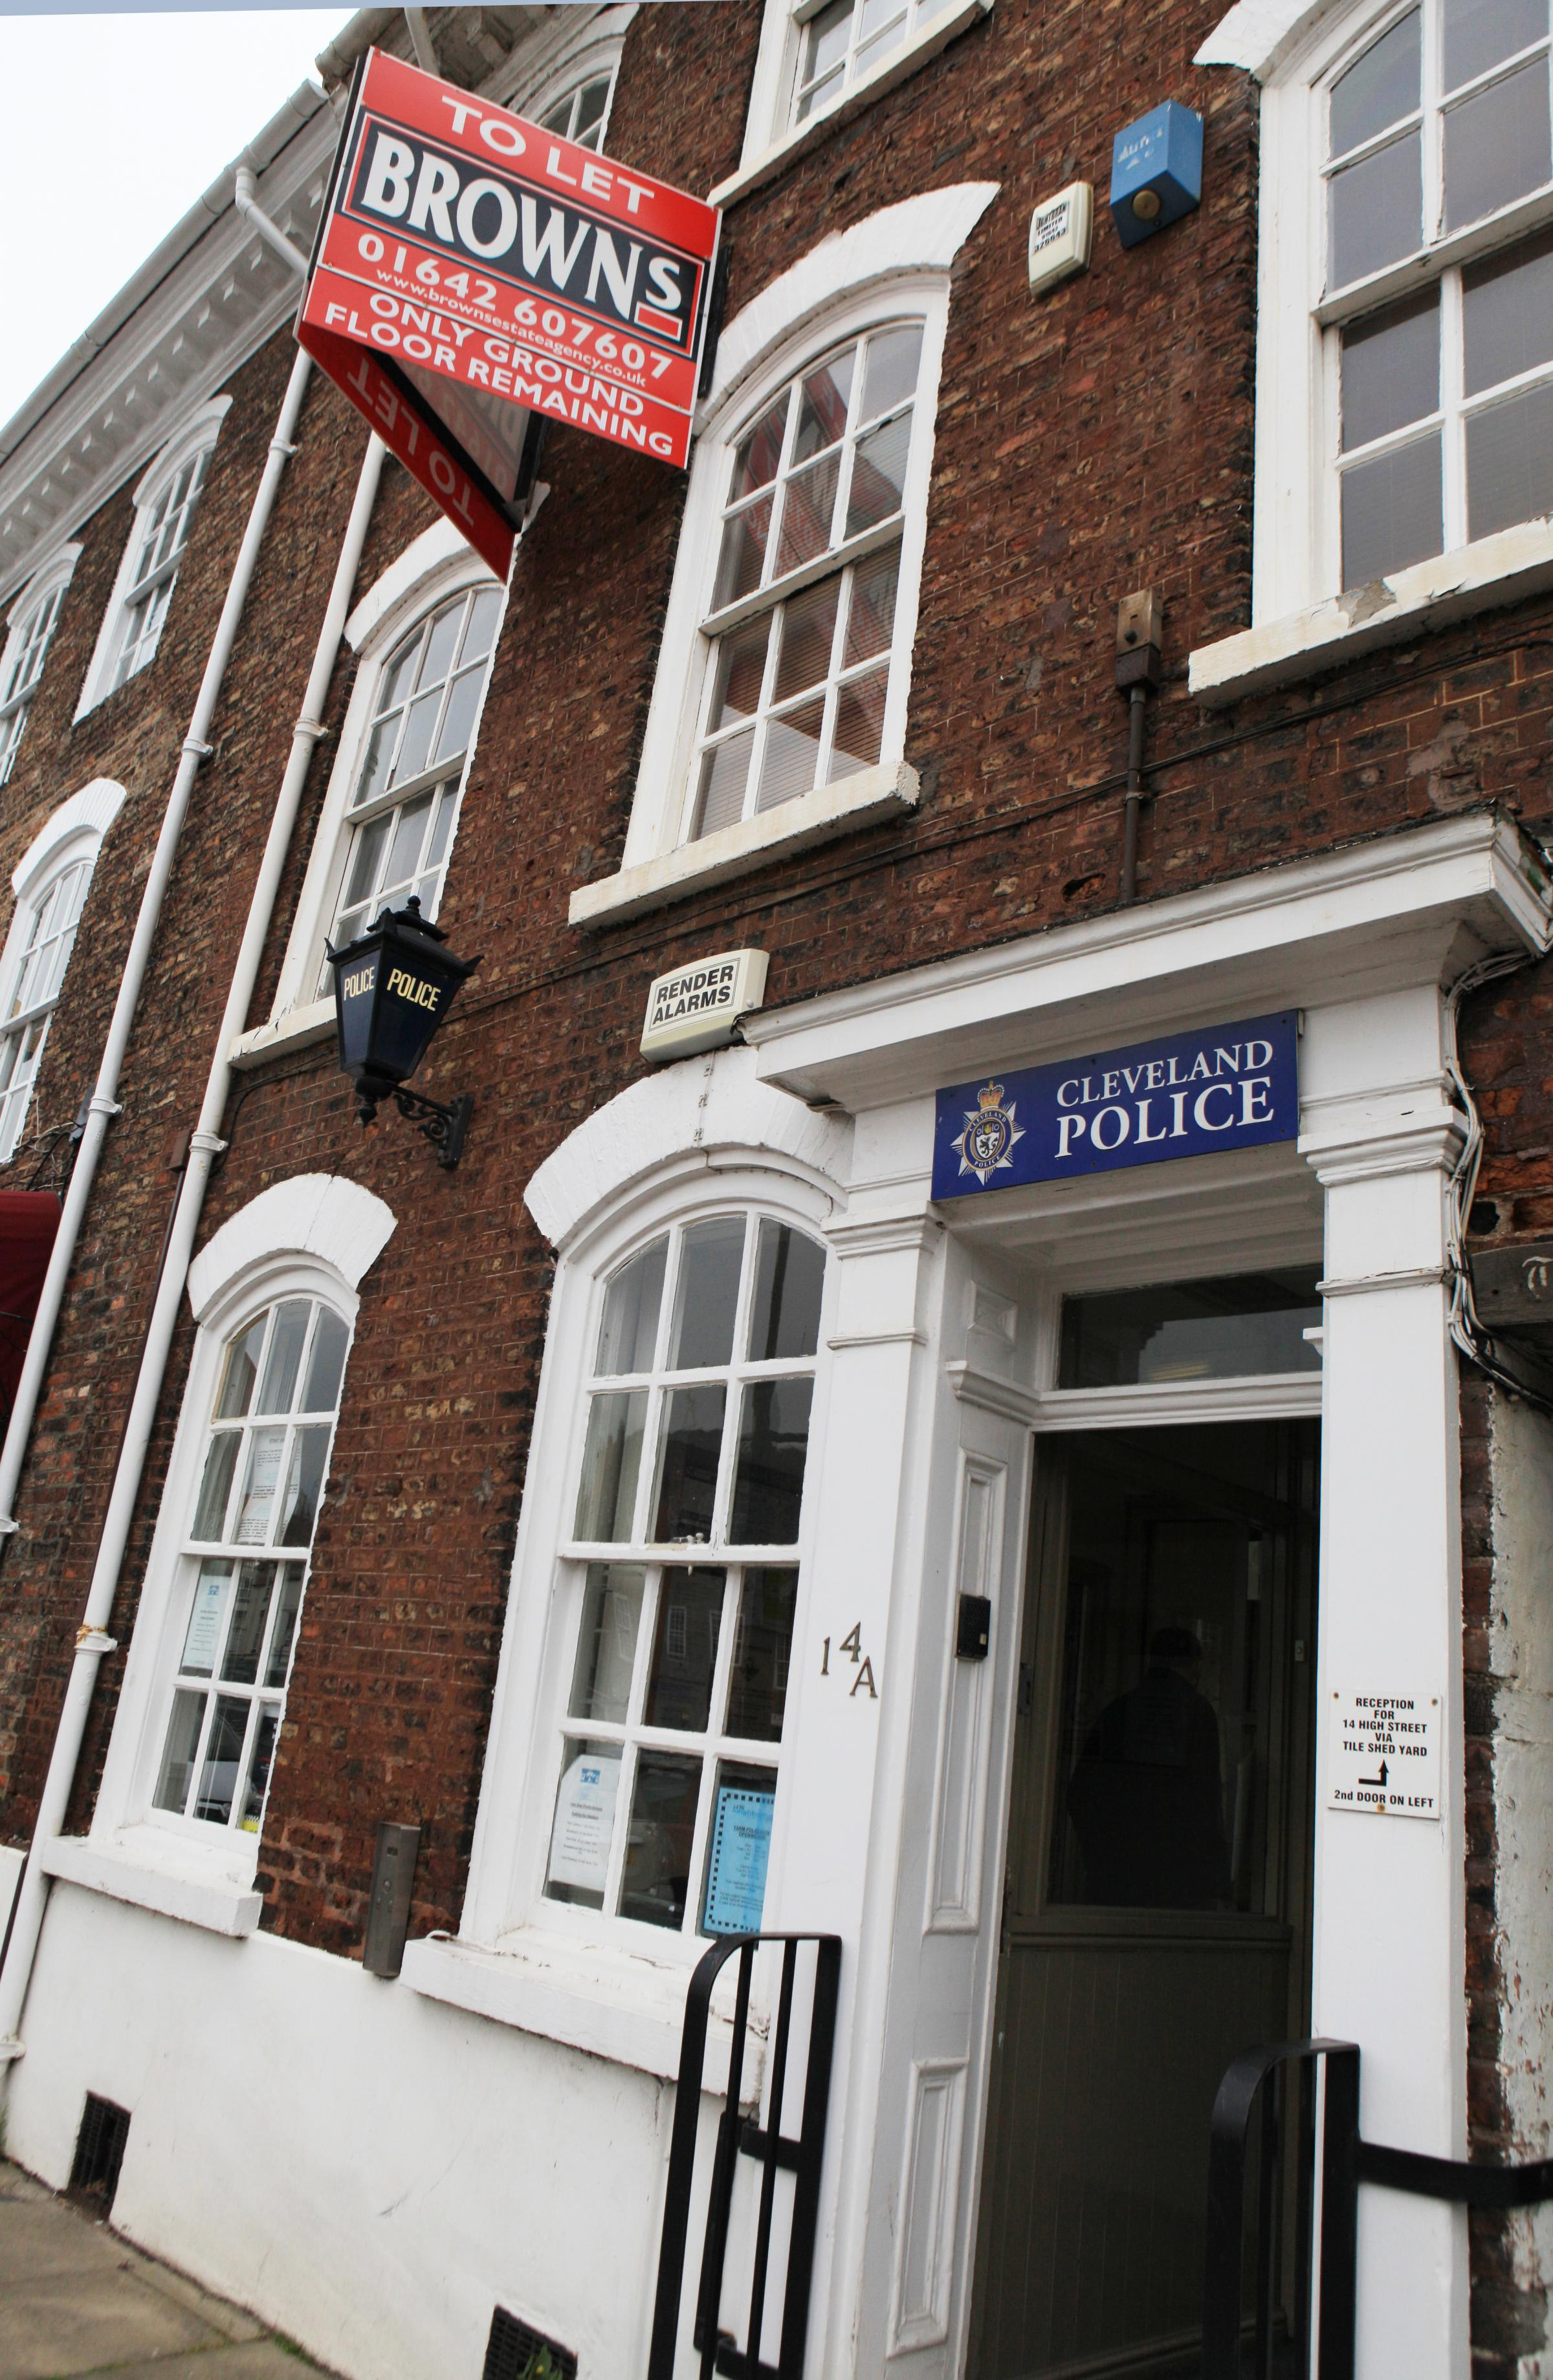 Yarm police station set to close